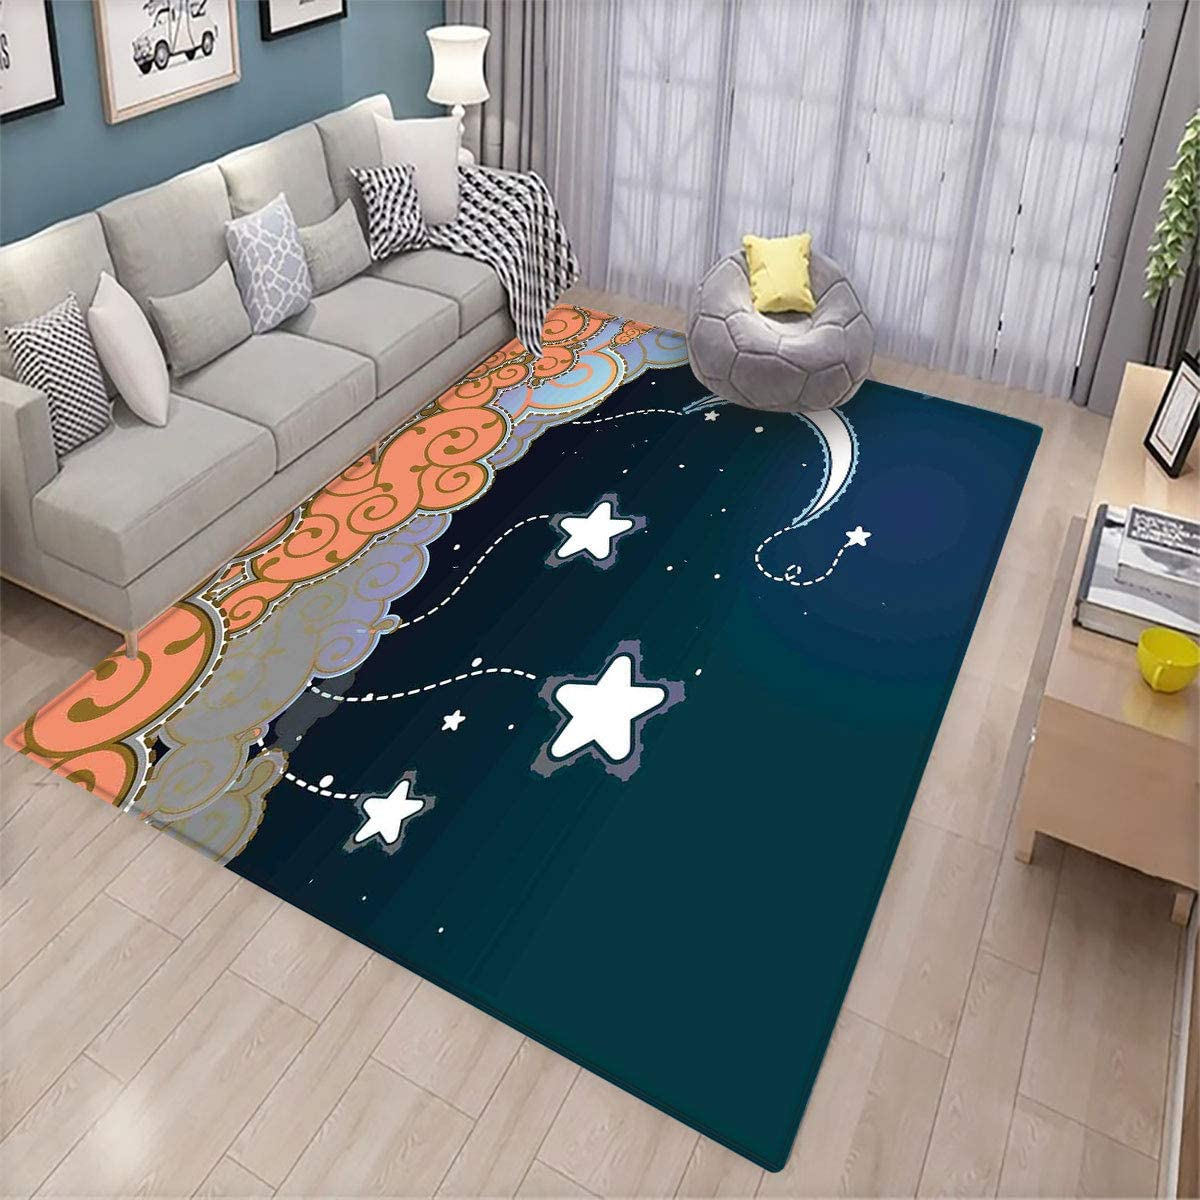 Kids,Custom Pattern Floor mat,Cartoon Style Night Sky with Swirled Clouds Stars and Moon Dotted Lines,Can be Used for Floor Decoration,6'x9.2' Dark Blue White Salmon